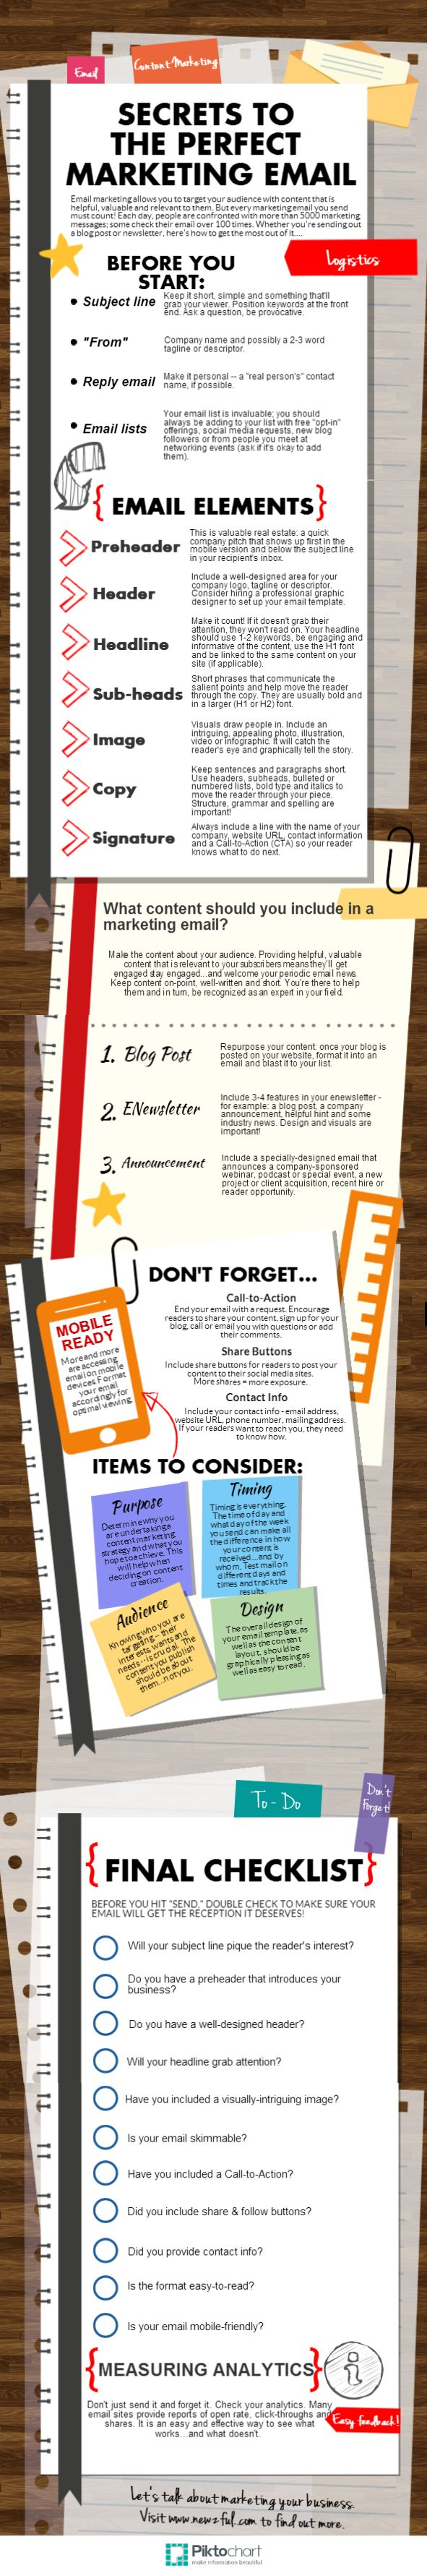 Secrets to the Perfect #Marketing #Email Repinned by Bethany at Sunrise Digital Marketing. www.sunrisedigitalmarketing.com Let Sunrise Digital Marketing create a web presence that reflects your business. With experience in creating websites that are appealing to visitors and search engines, we can bring your business online in style.